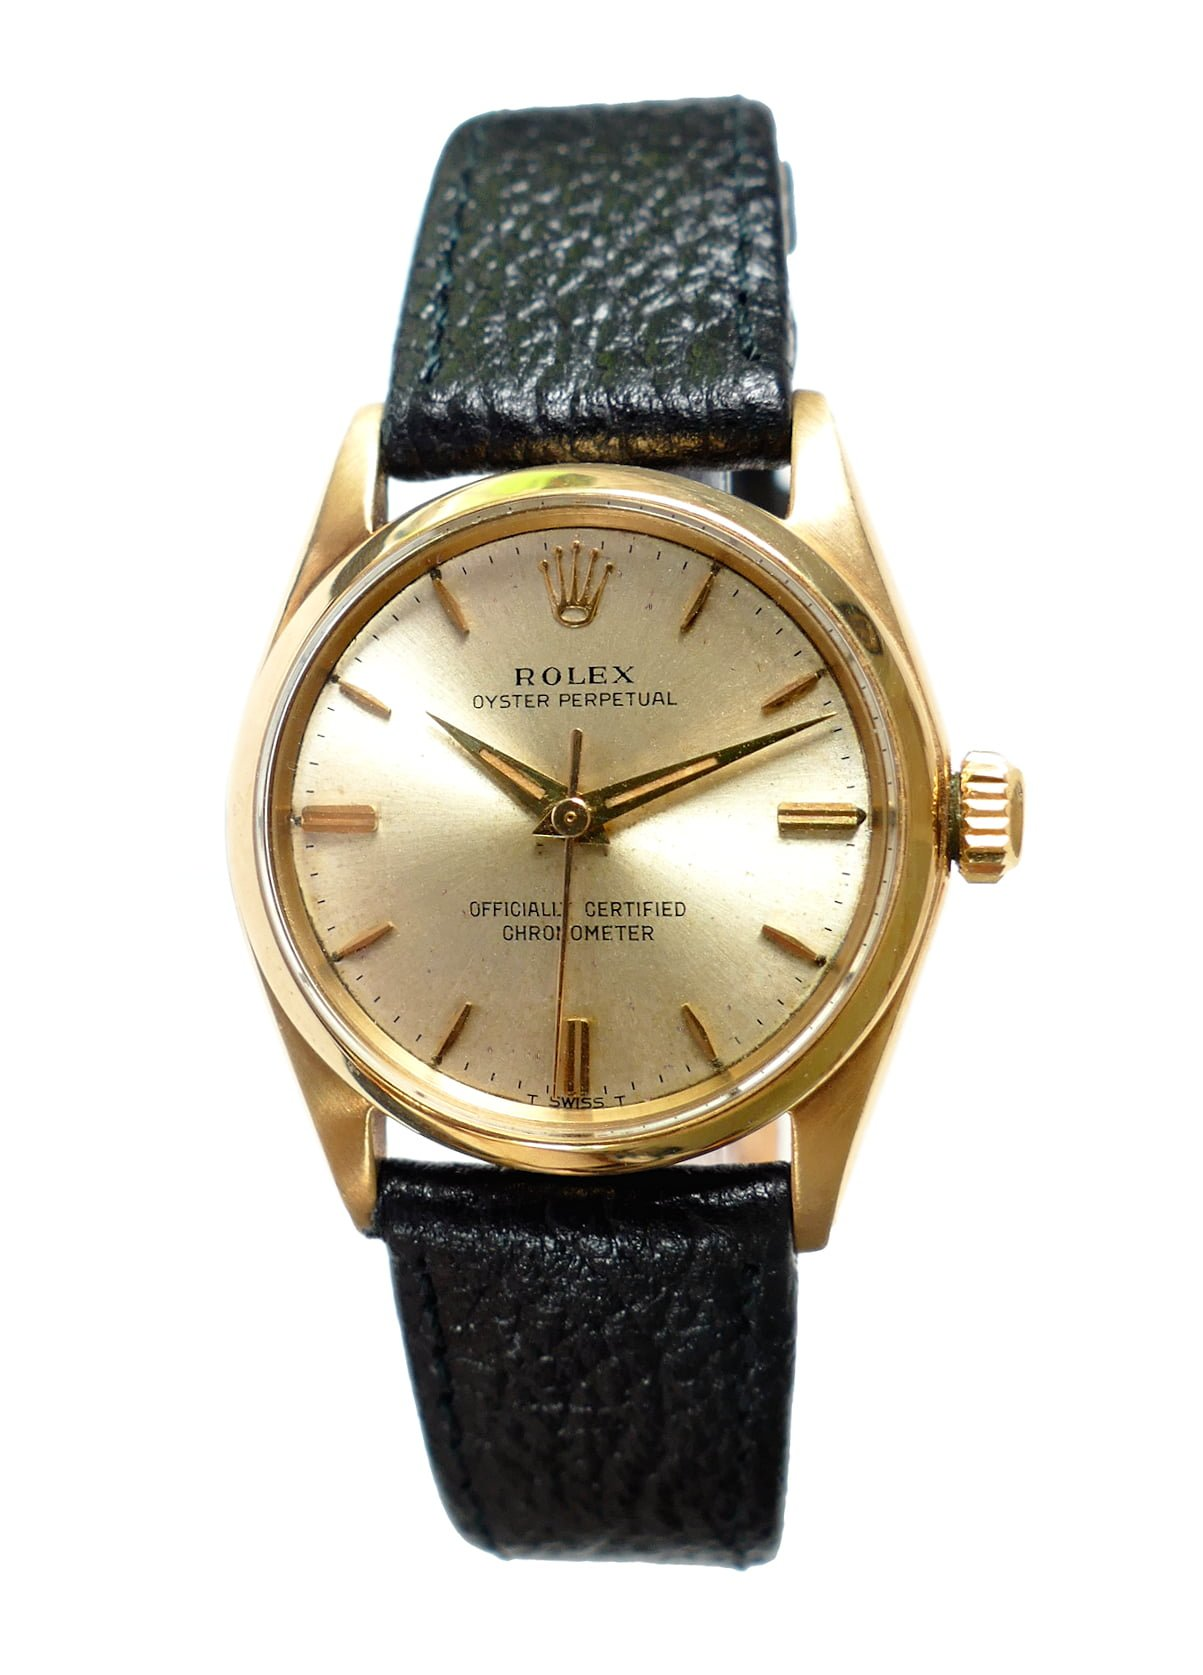 Vintage Rolex Oyster Perpetual 14K Ladies/Boys Watch ...